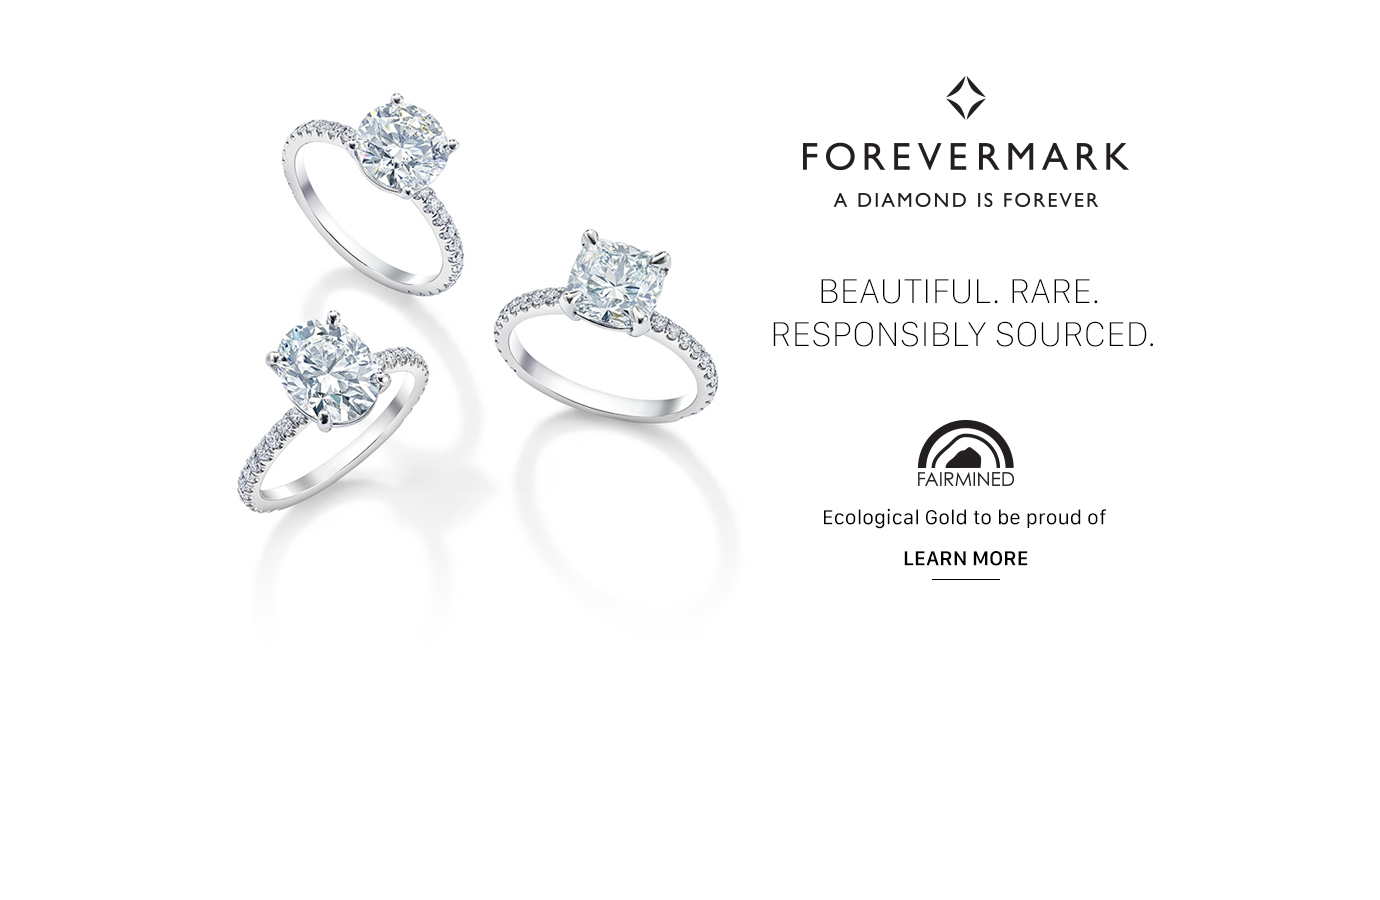 Responsibly-sourced Diamonds - Ethical Diamonds -